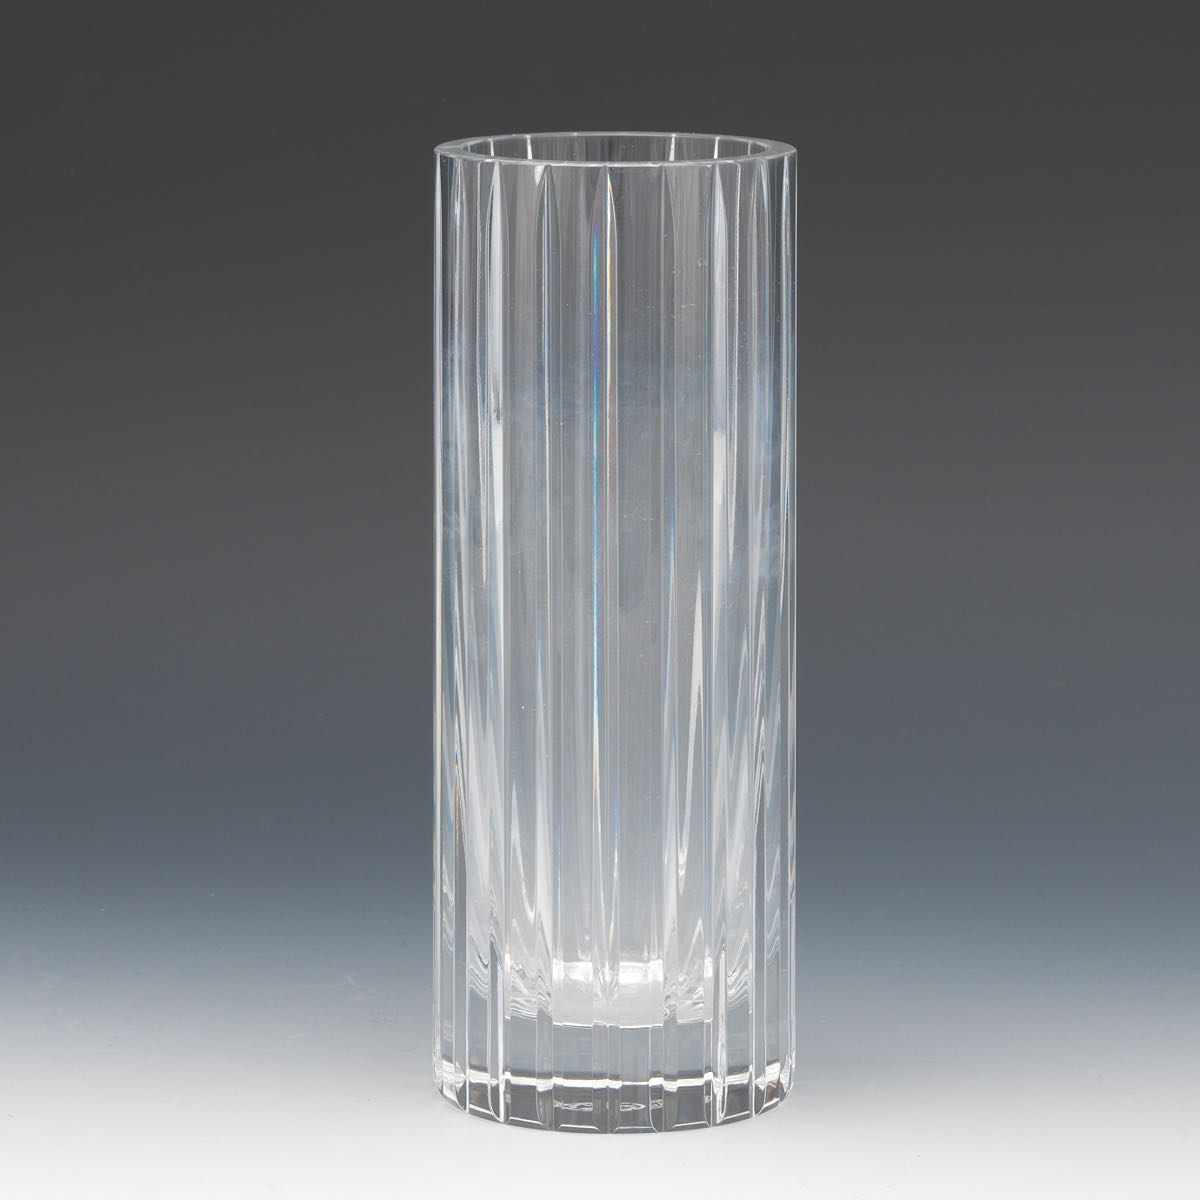 Baccarat glass vase online poker pros where are they now